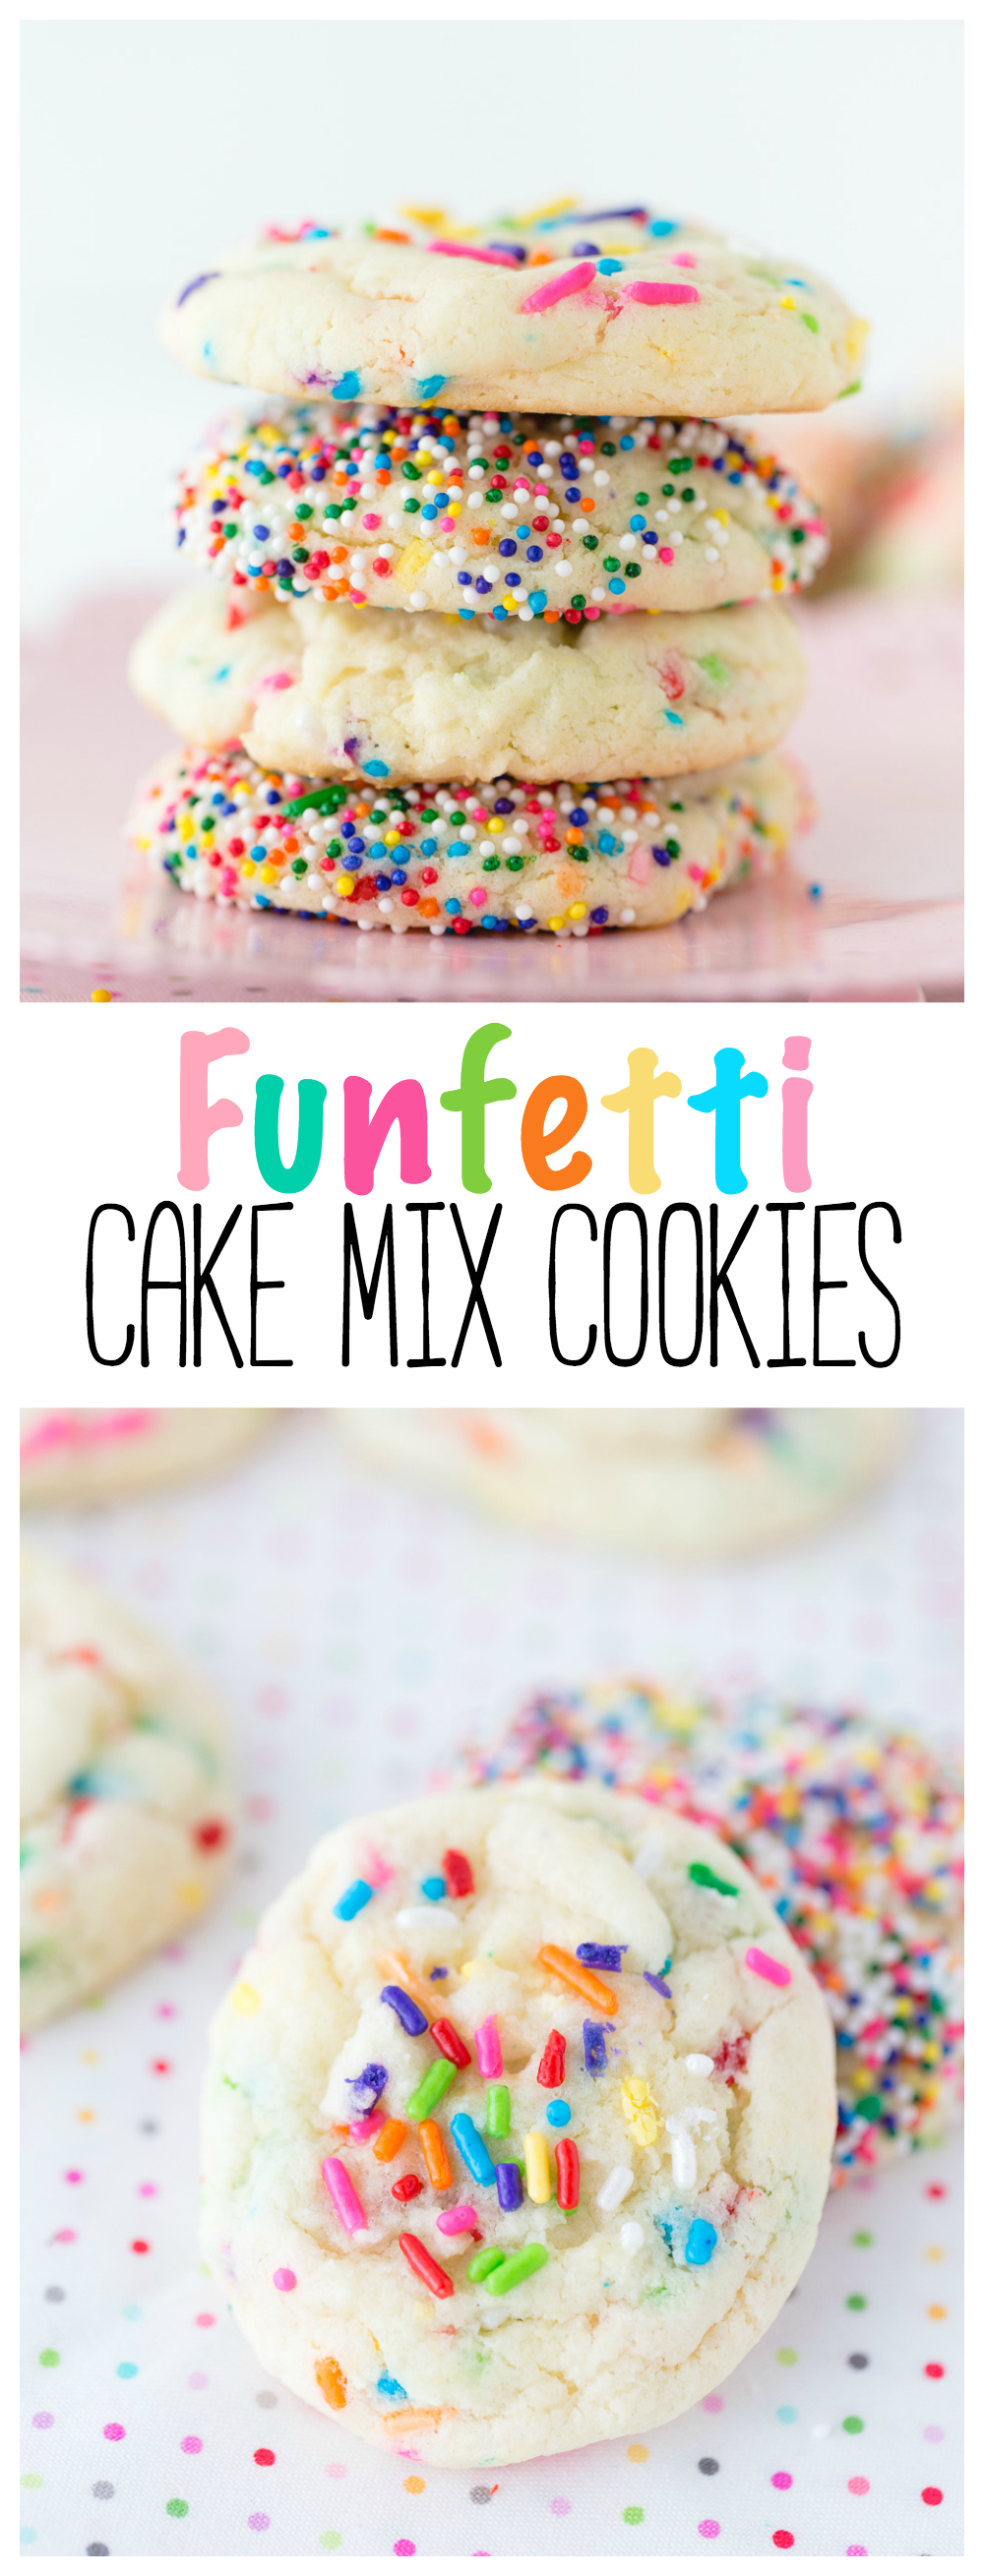 Funfetti Cake Mix Cookies | Cookies | Cake Mix Recipe | Cake Mix |